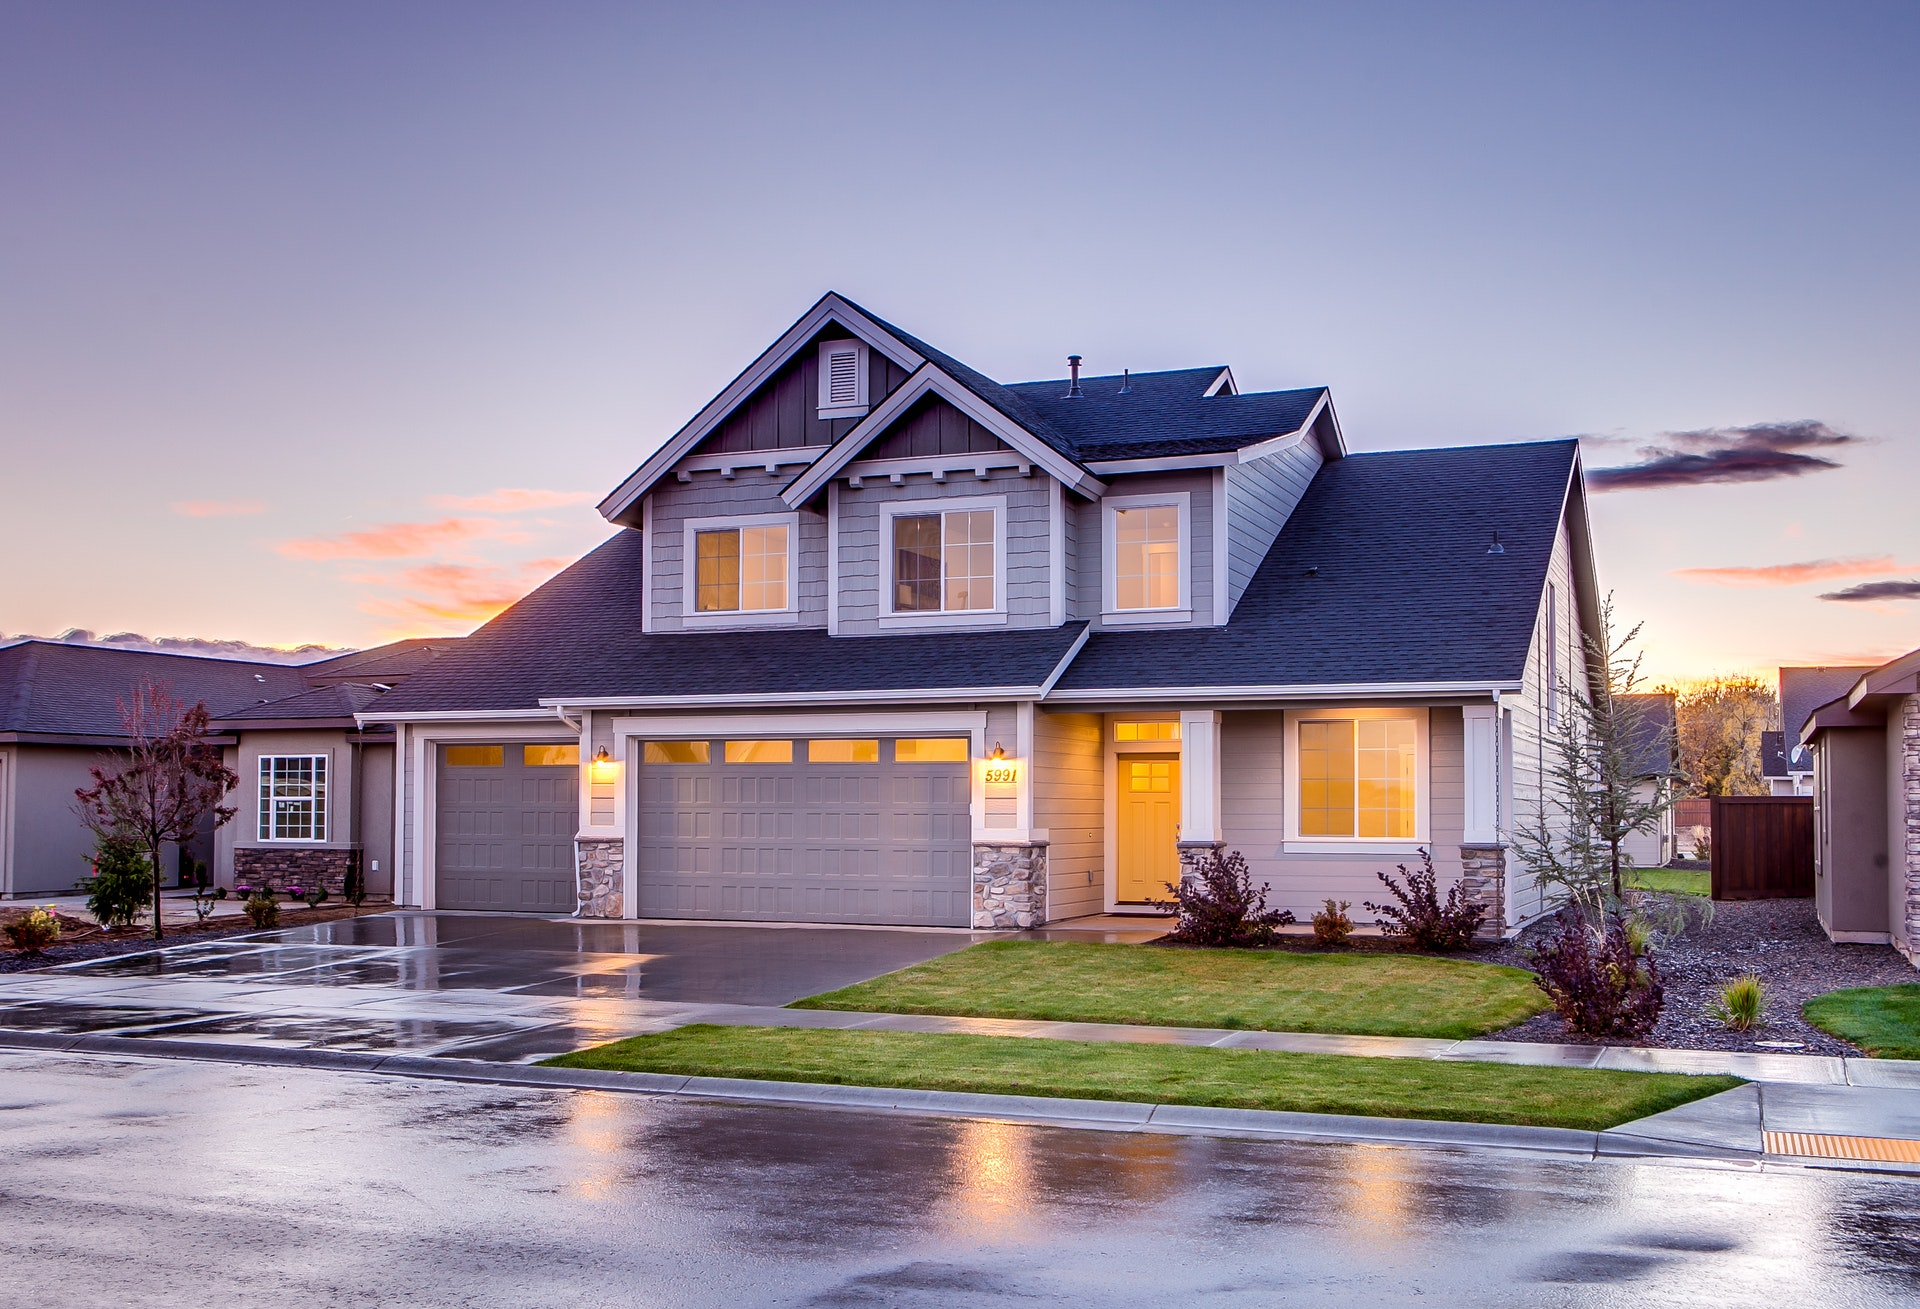 In Escrow: What You Need to Know